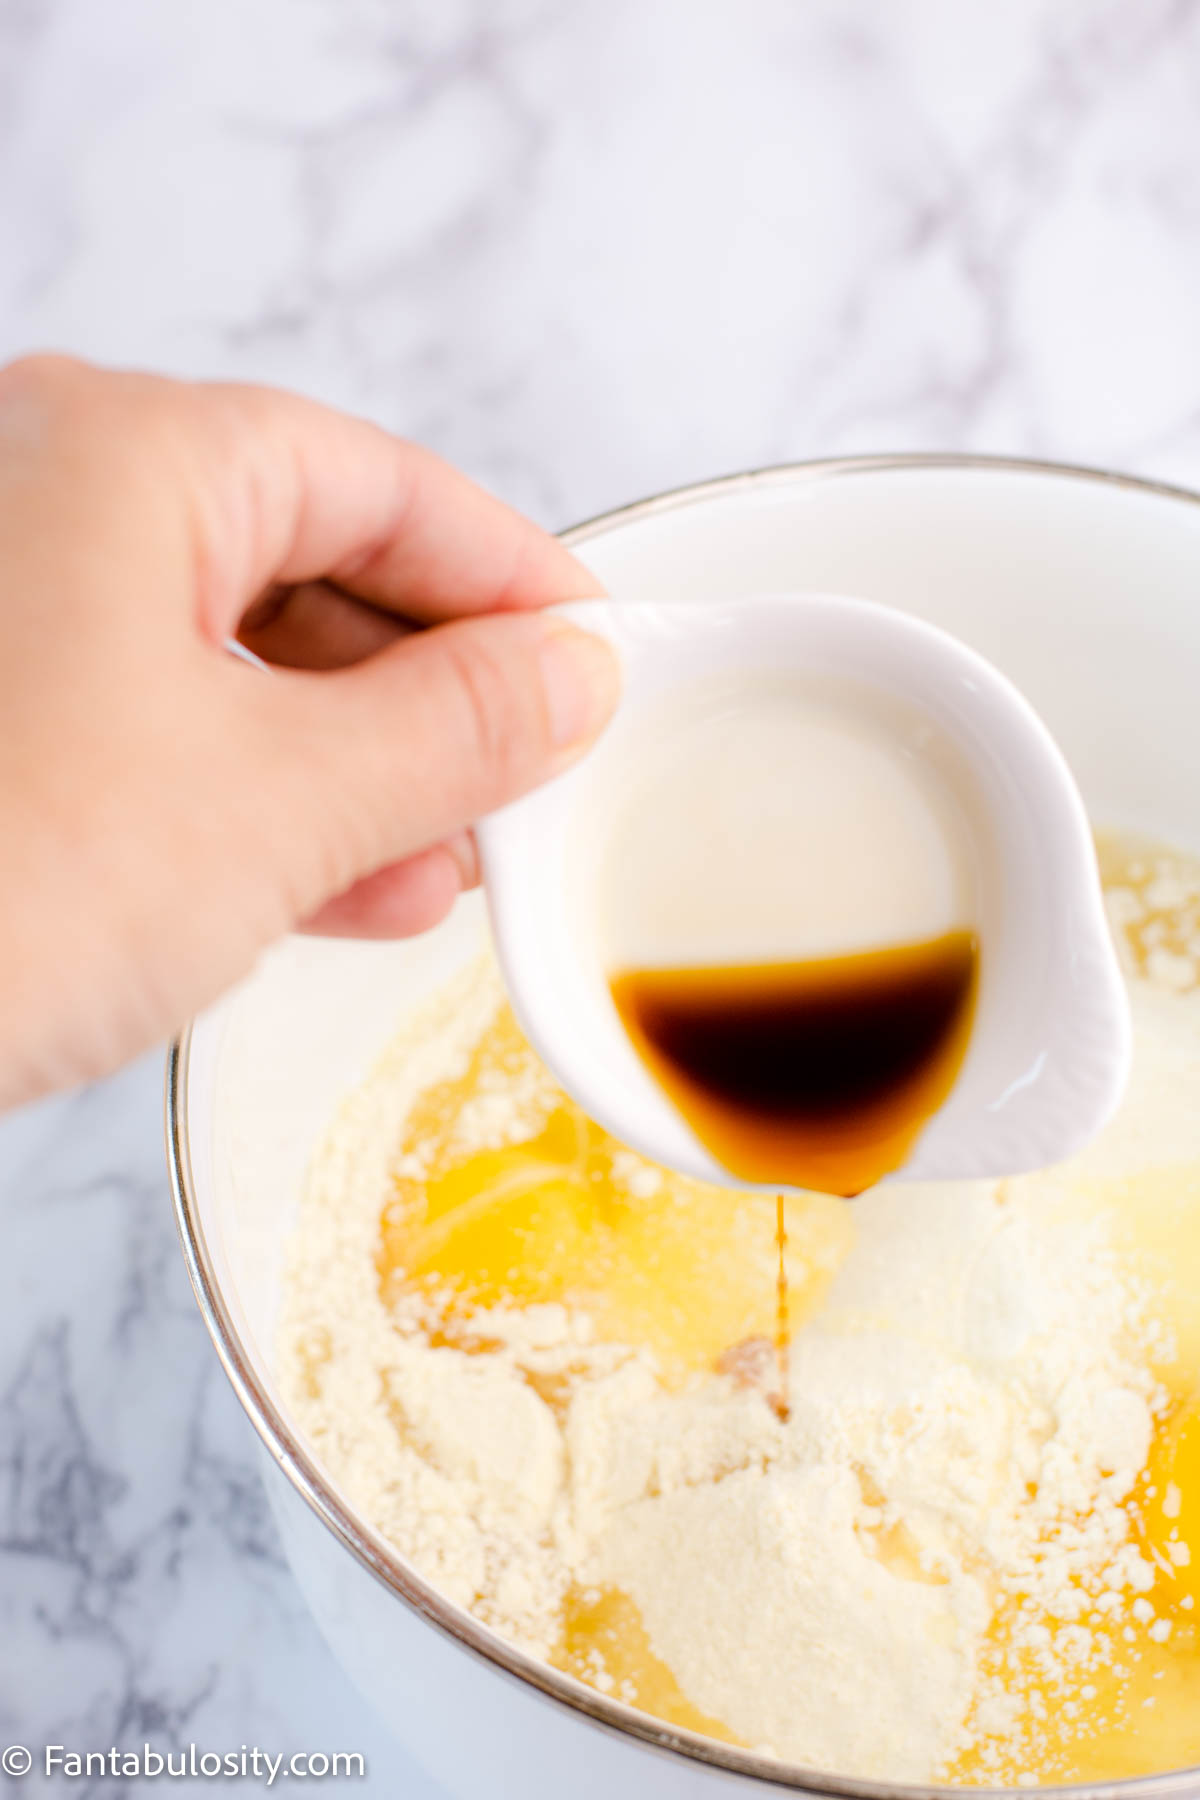 Pour vanilla in to cake mix